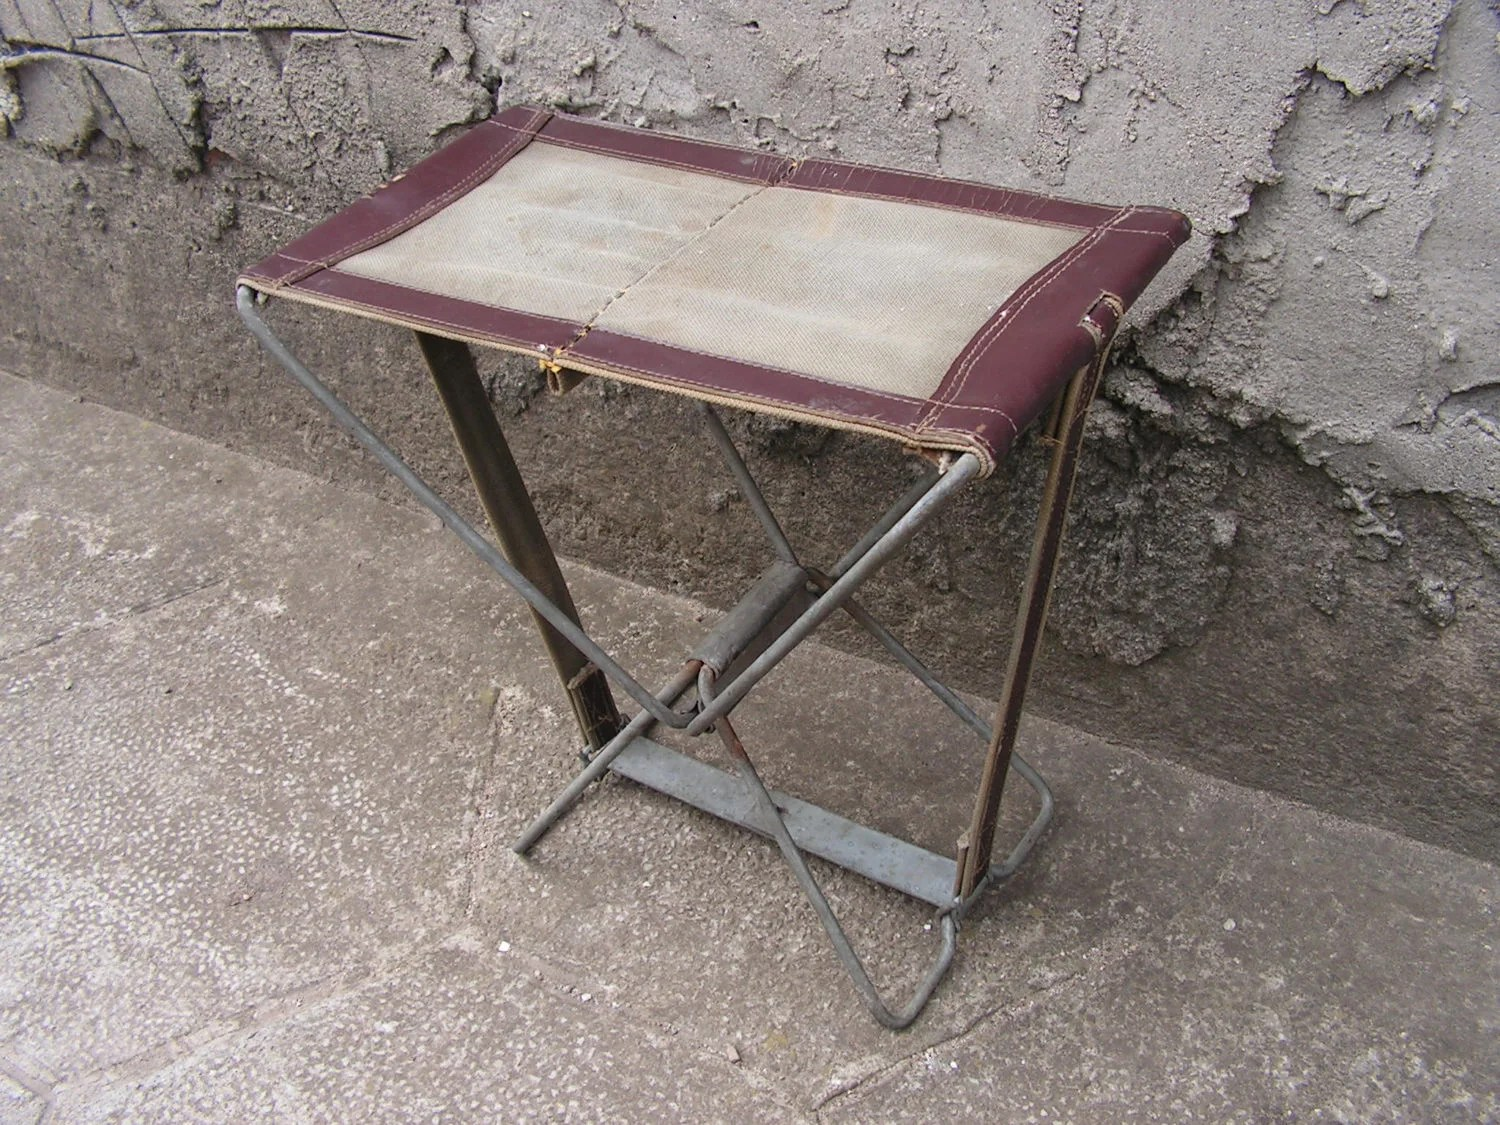 fishing chair small designboom vintage folding stool camping